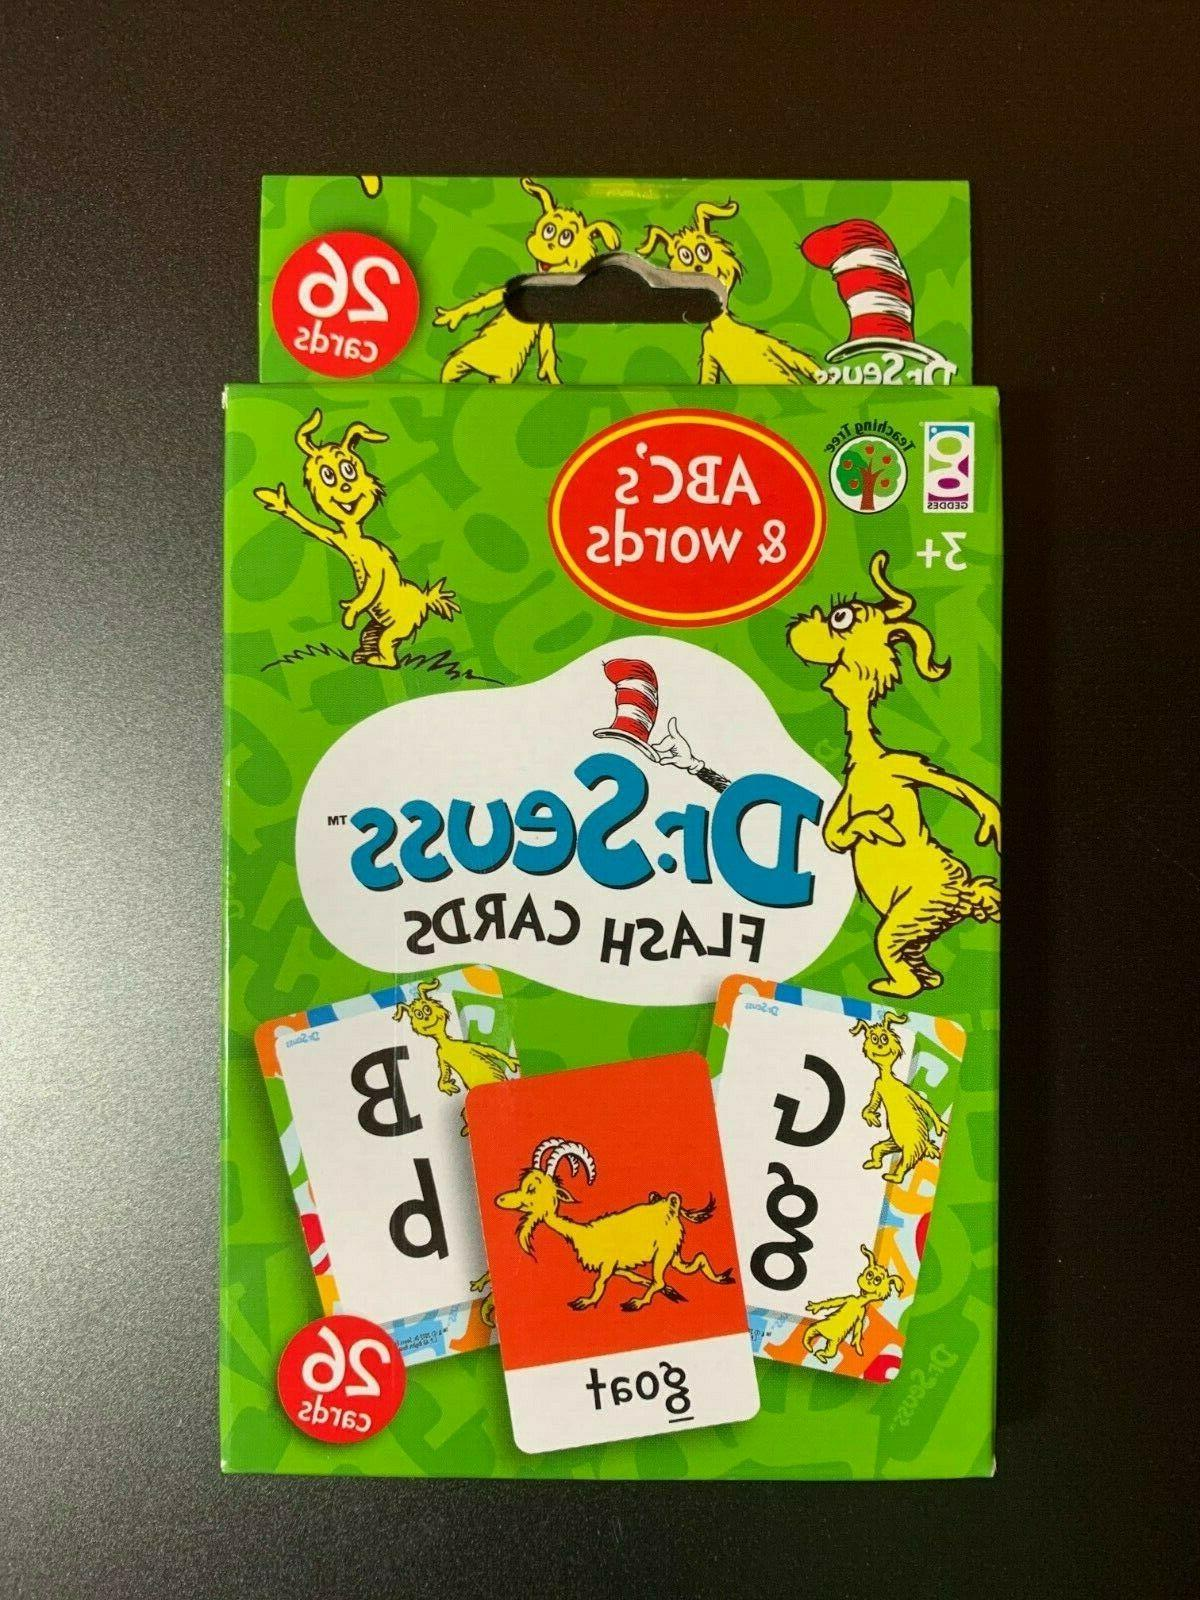 DR.SEUSS CARDS 1-20, ABC'S & COLORS & SHAPES LEARNING!